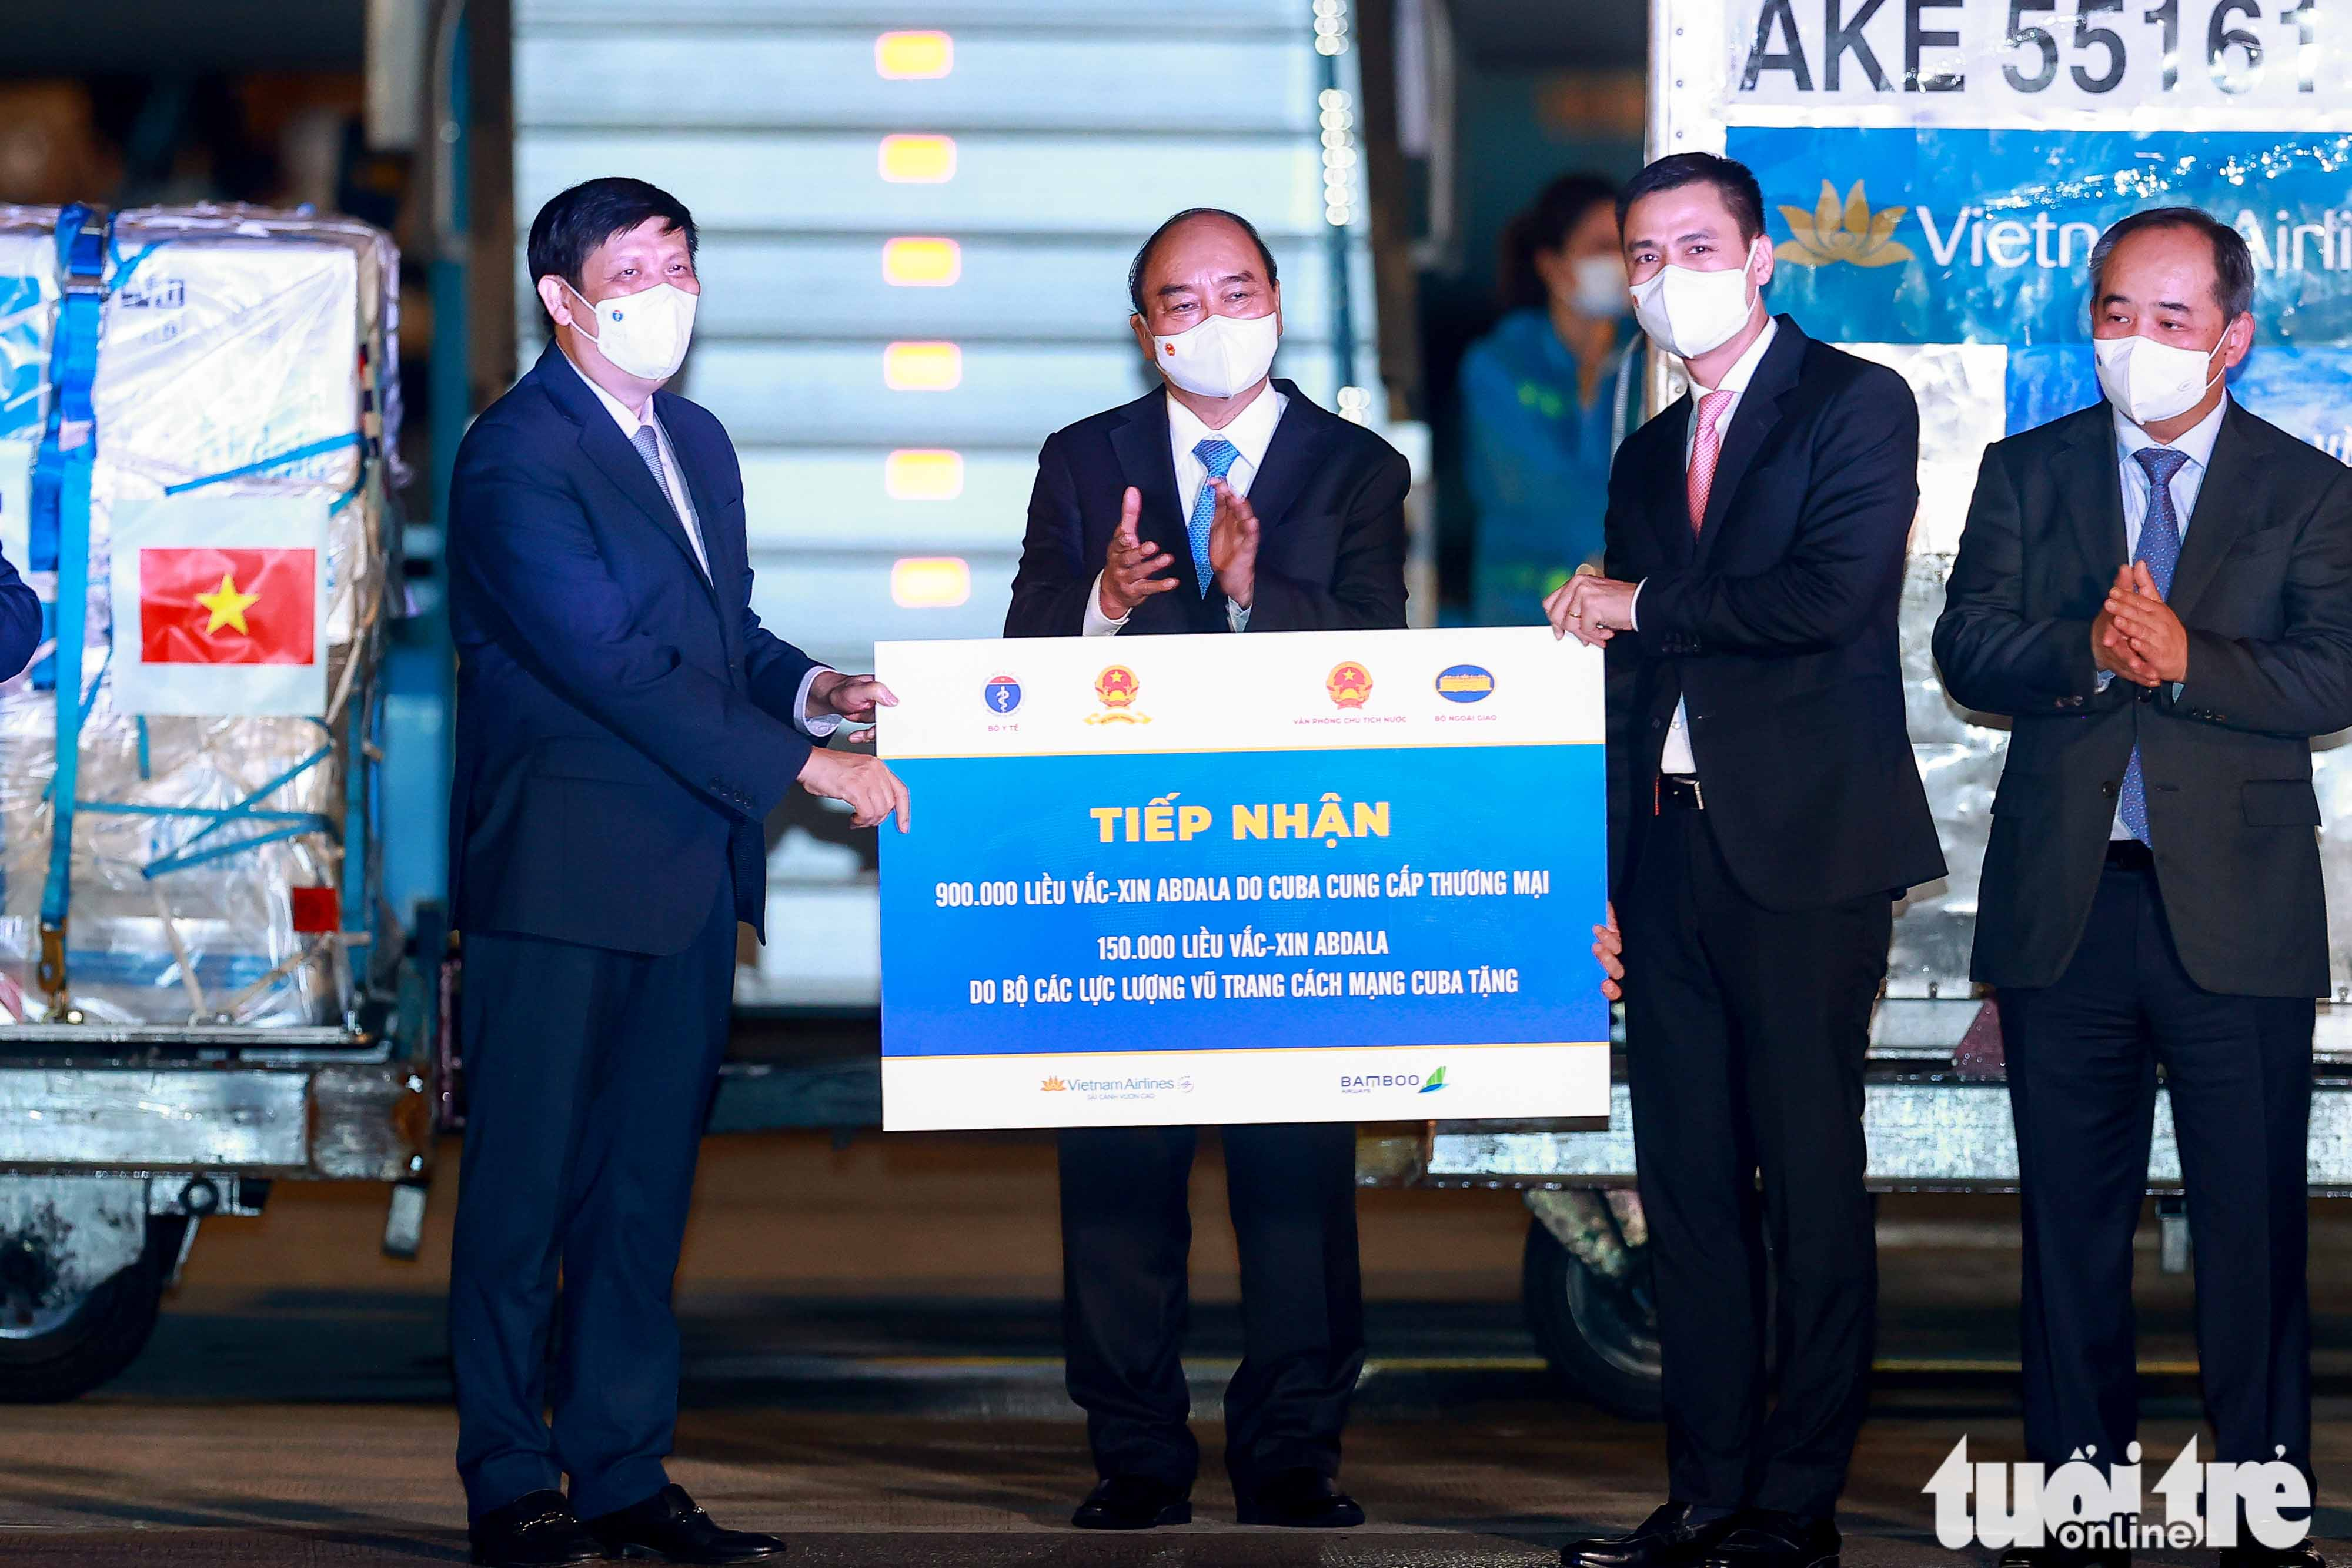 Over one million doses of the Abdala COVID-19 vaccine are handed over to Vietnam during a ceremony Noi Bai International Airport in Hanoi, September 25, 2021. Photo: Nguyen Khanh / Tuoi Tre